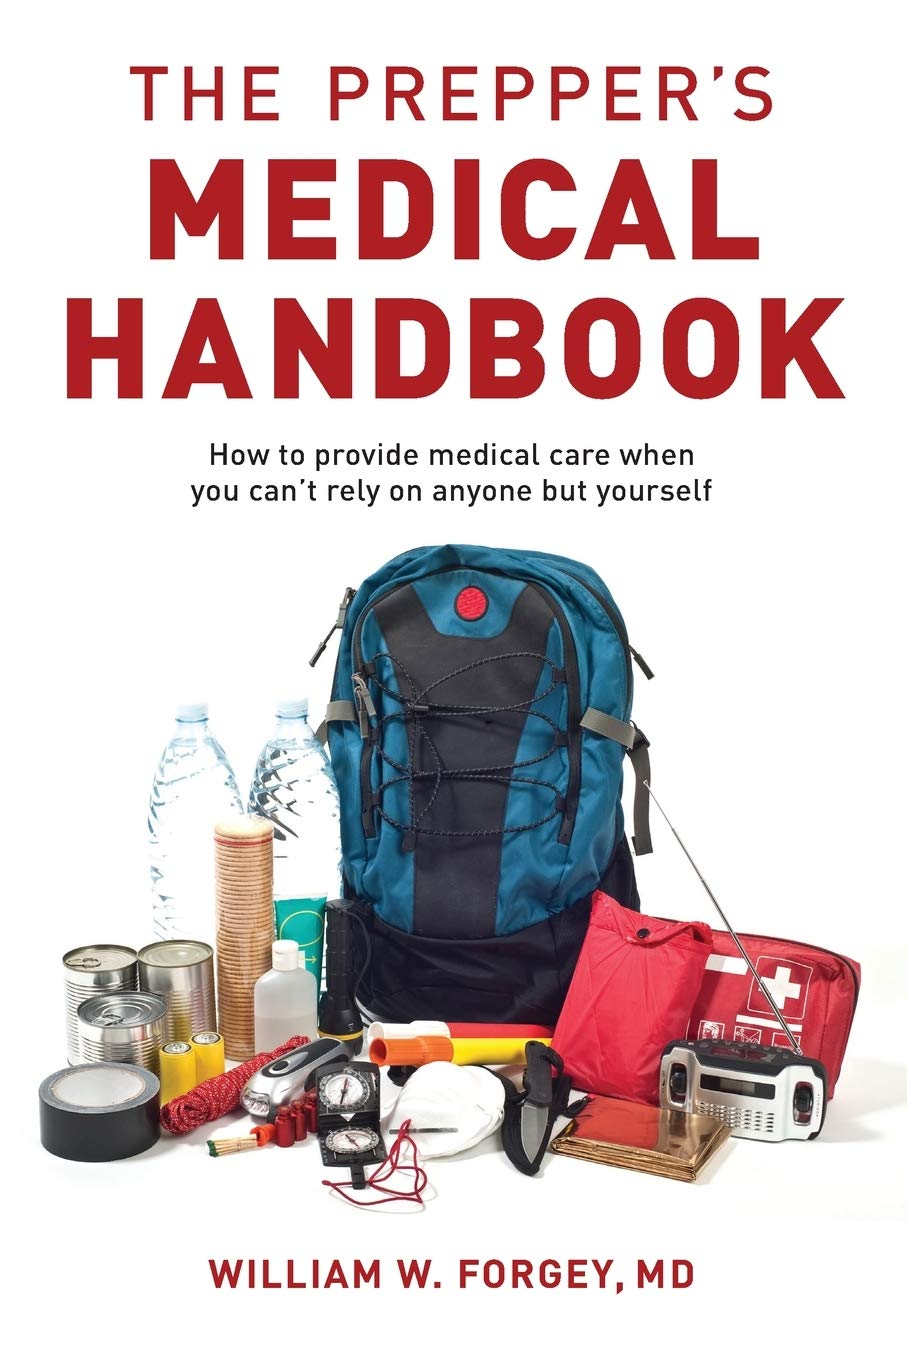 The Prepper's Medical Handbook